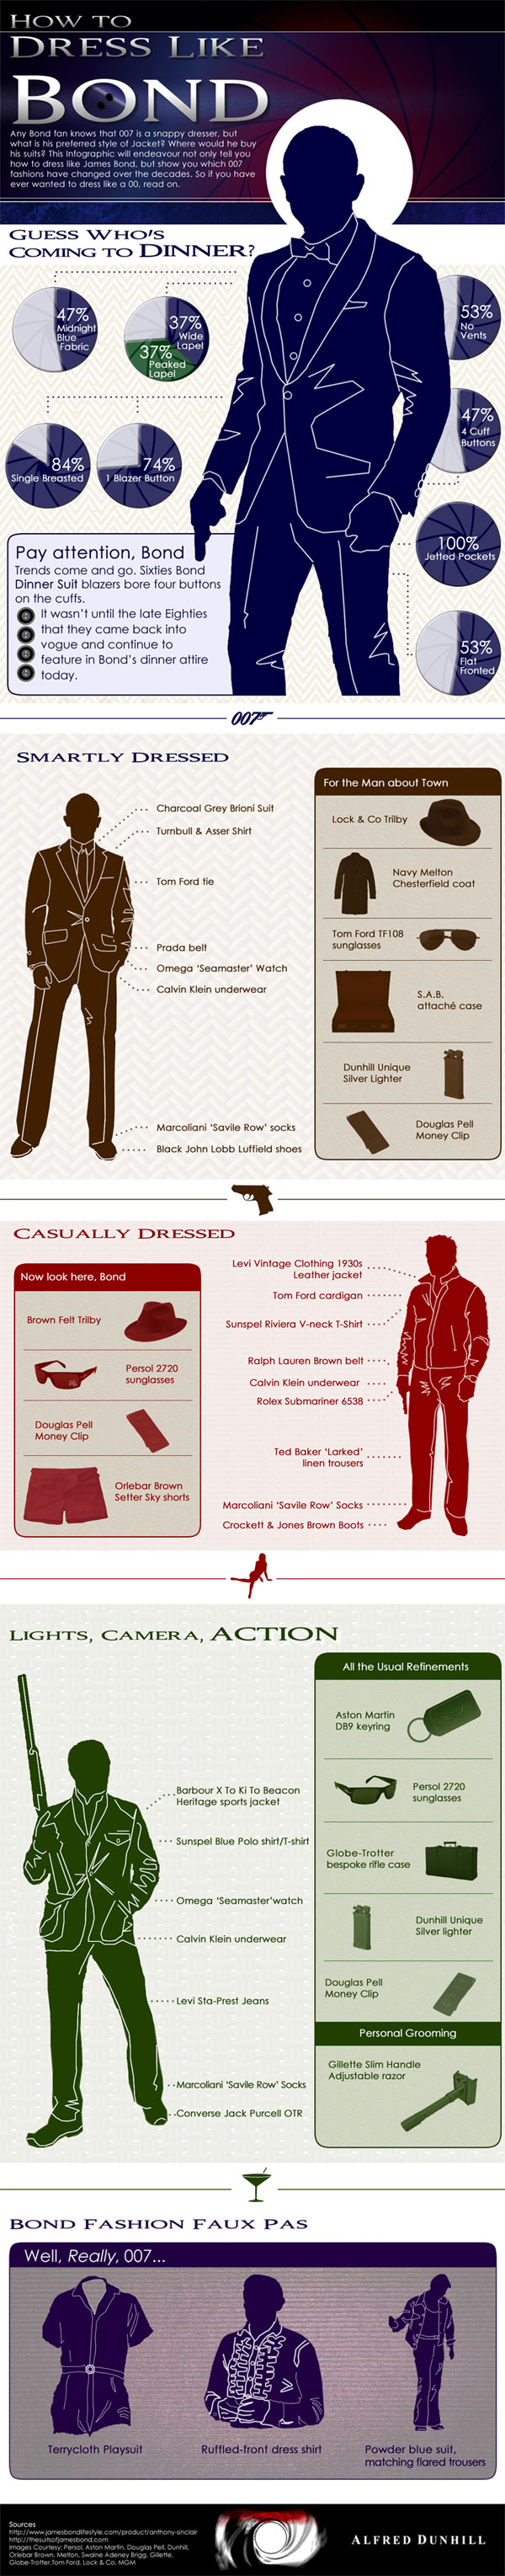 How to Dress Like James Bond